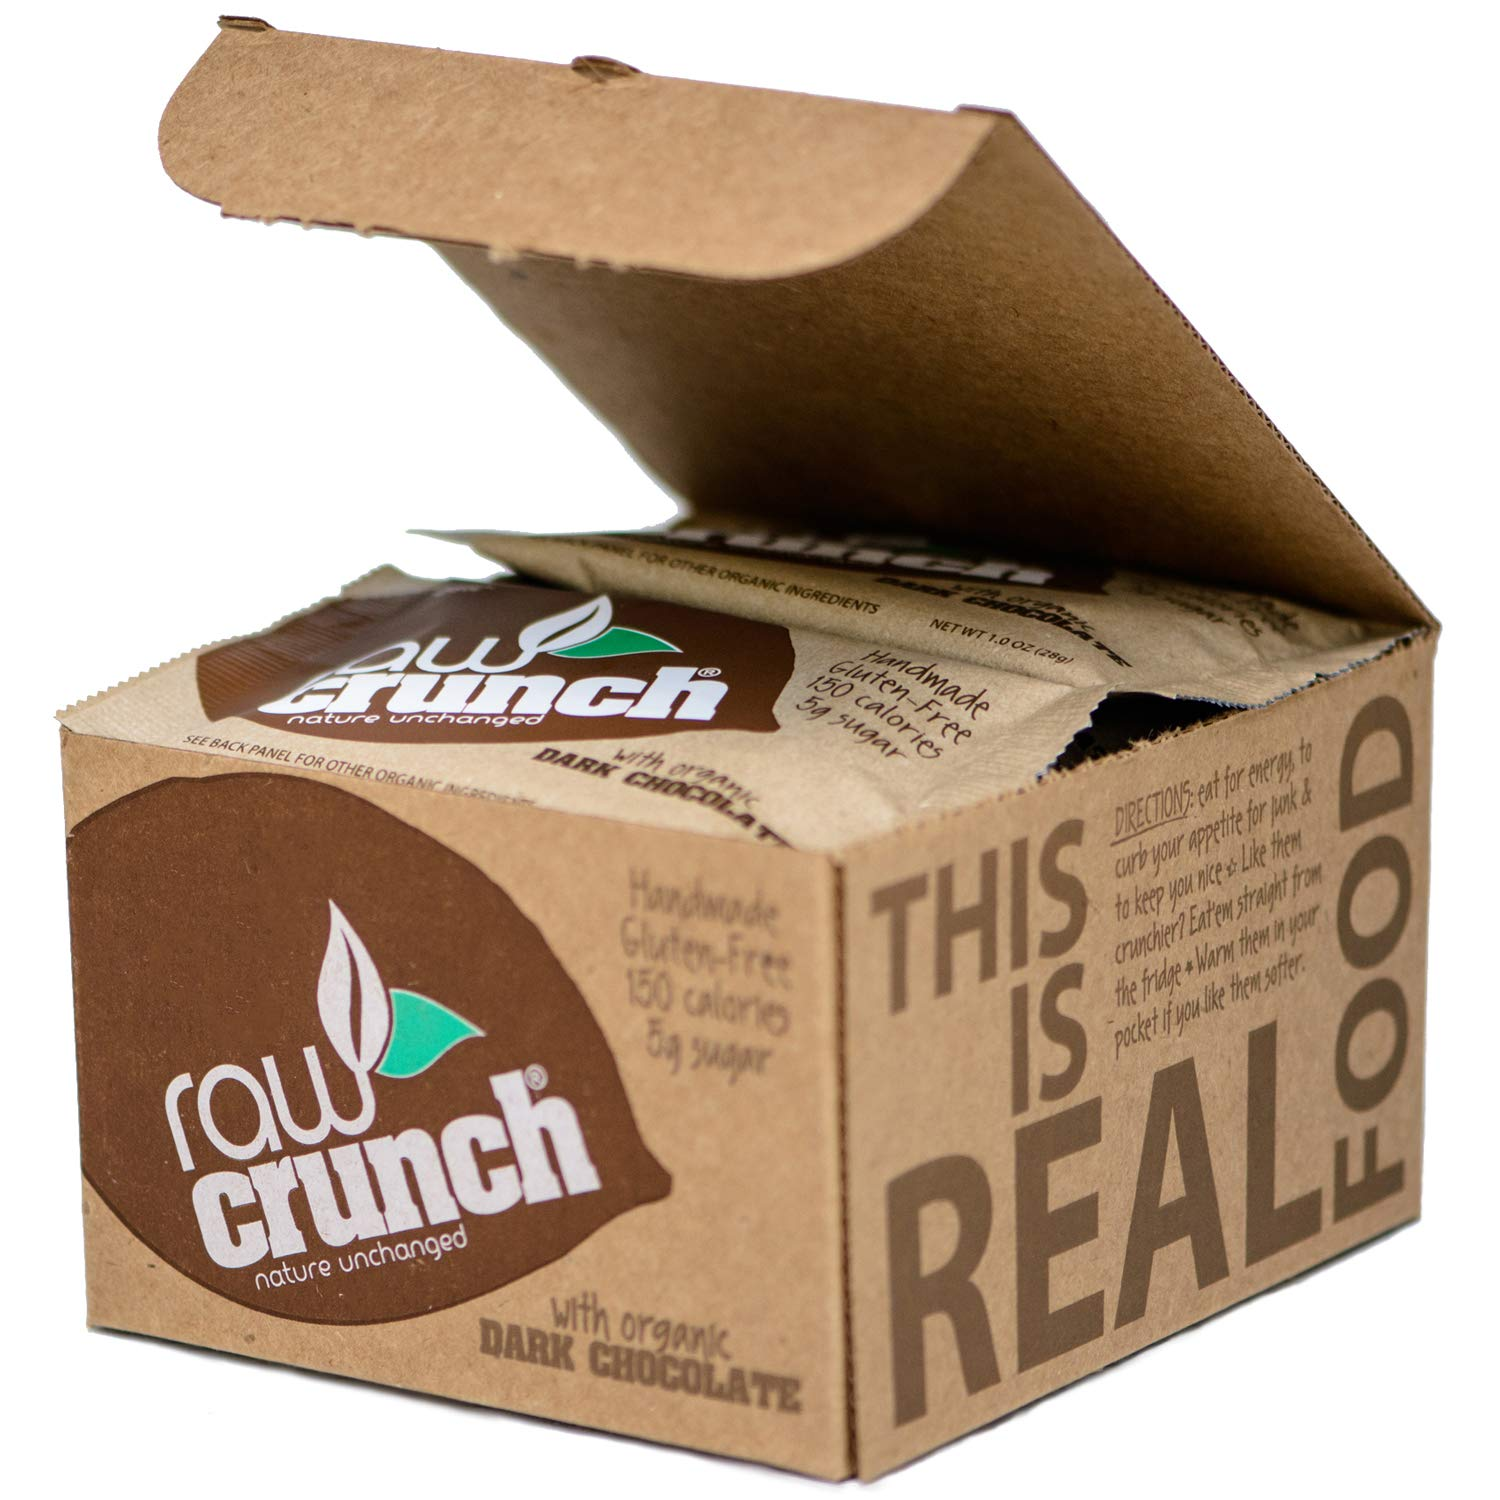 Raw Crunch Bar (Box of 12) - Organic Dark Chocolate - Gluten Free, Dairy Free, Low Carb, Paleo, Plant Based Protein,150 Calorie Real Food Bar